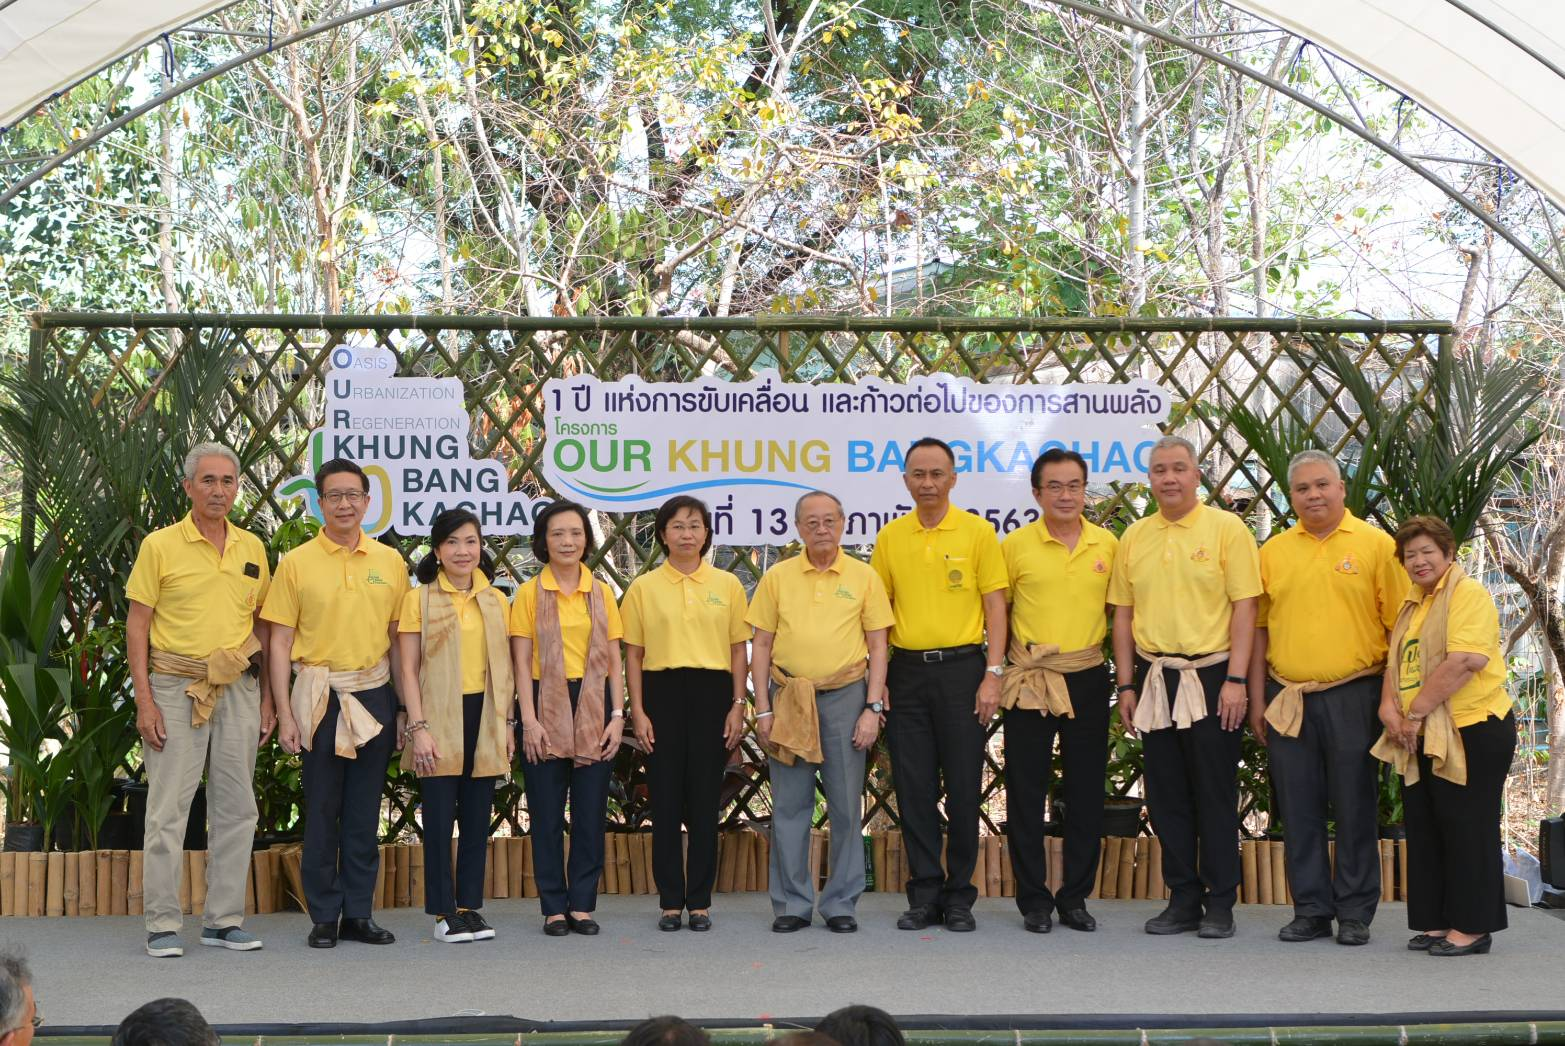 """Thai Bev Joins  """"OUR Khung BangKachao"""" Project to Develop Khung Bang Kachao  to Become a Sustainable Economy Community"""